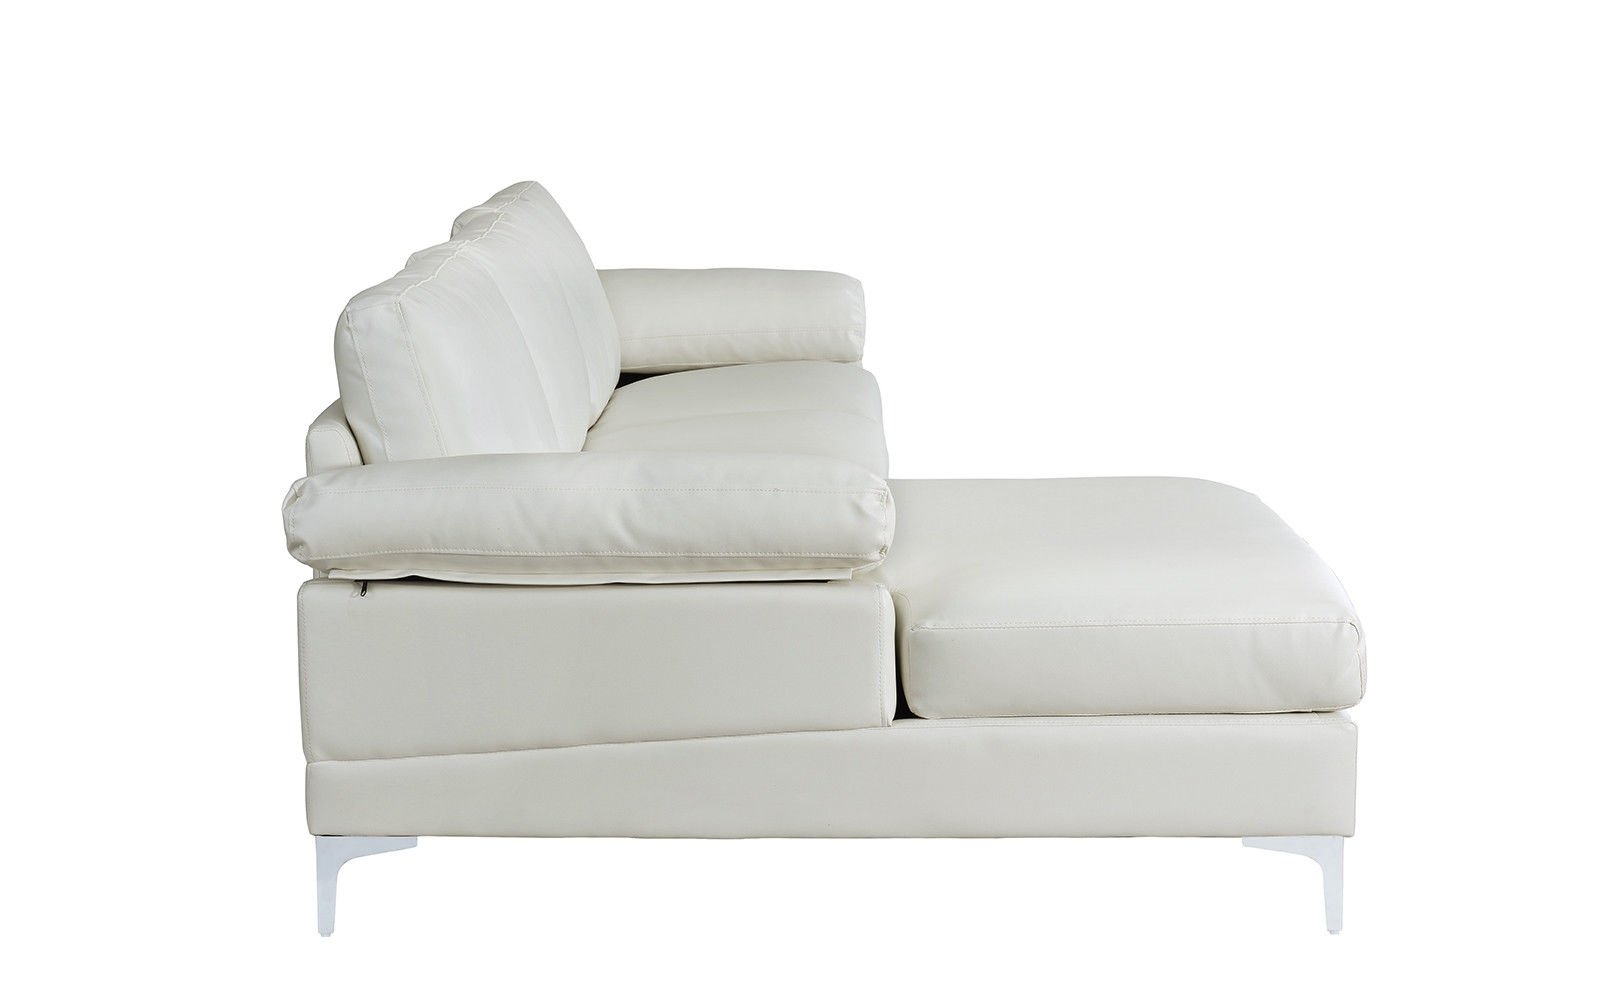 Modern Large Faux Leather Sectional Sofa L-Shape Couch ...